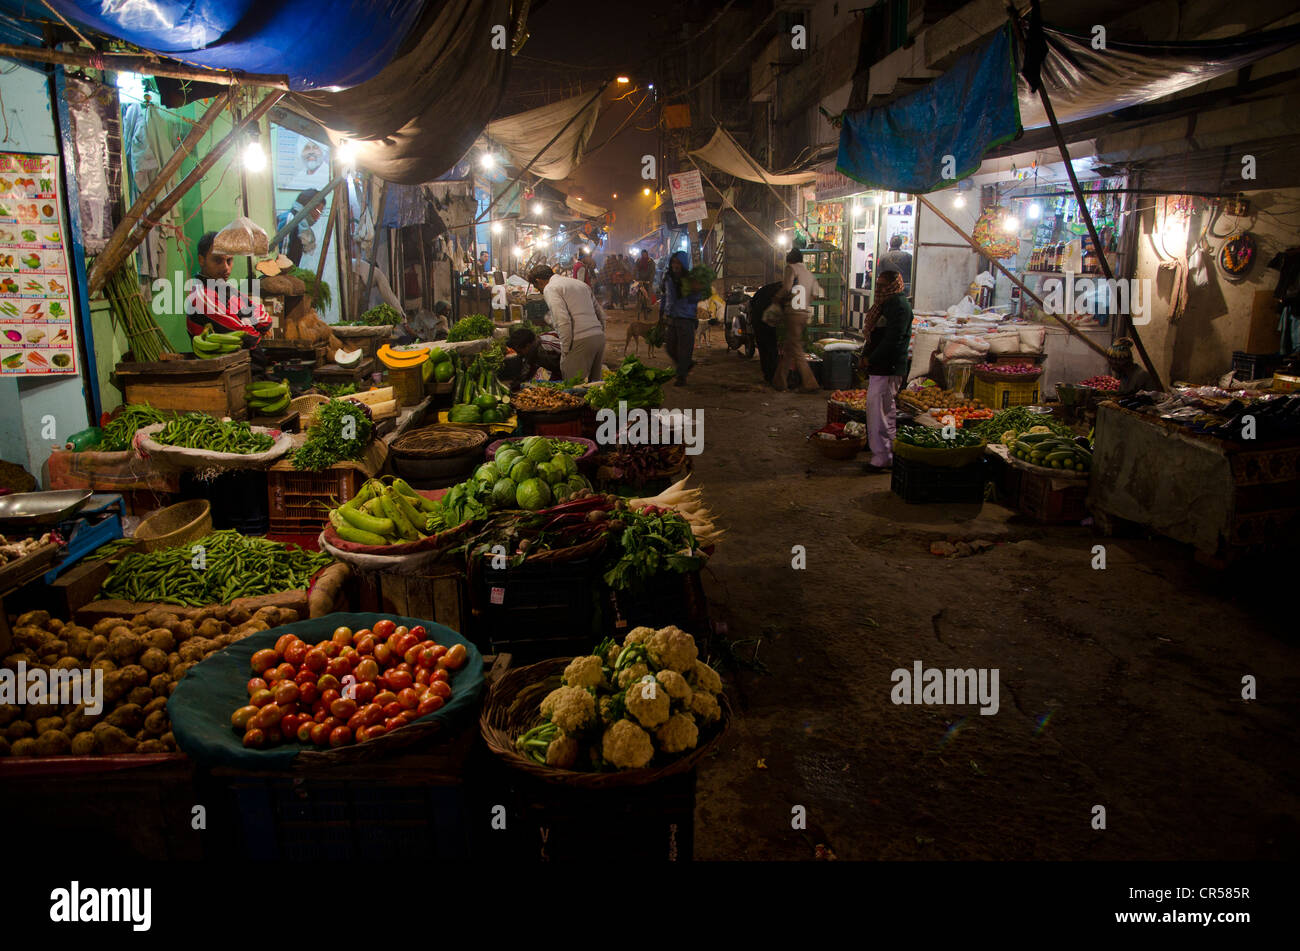 Vegetable stall on the nightmarket in the suburb of Paharganj, New Delhi, India, Asia - Stock Image